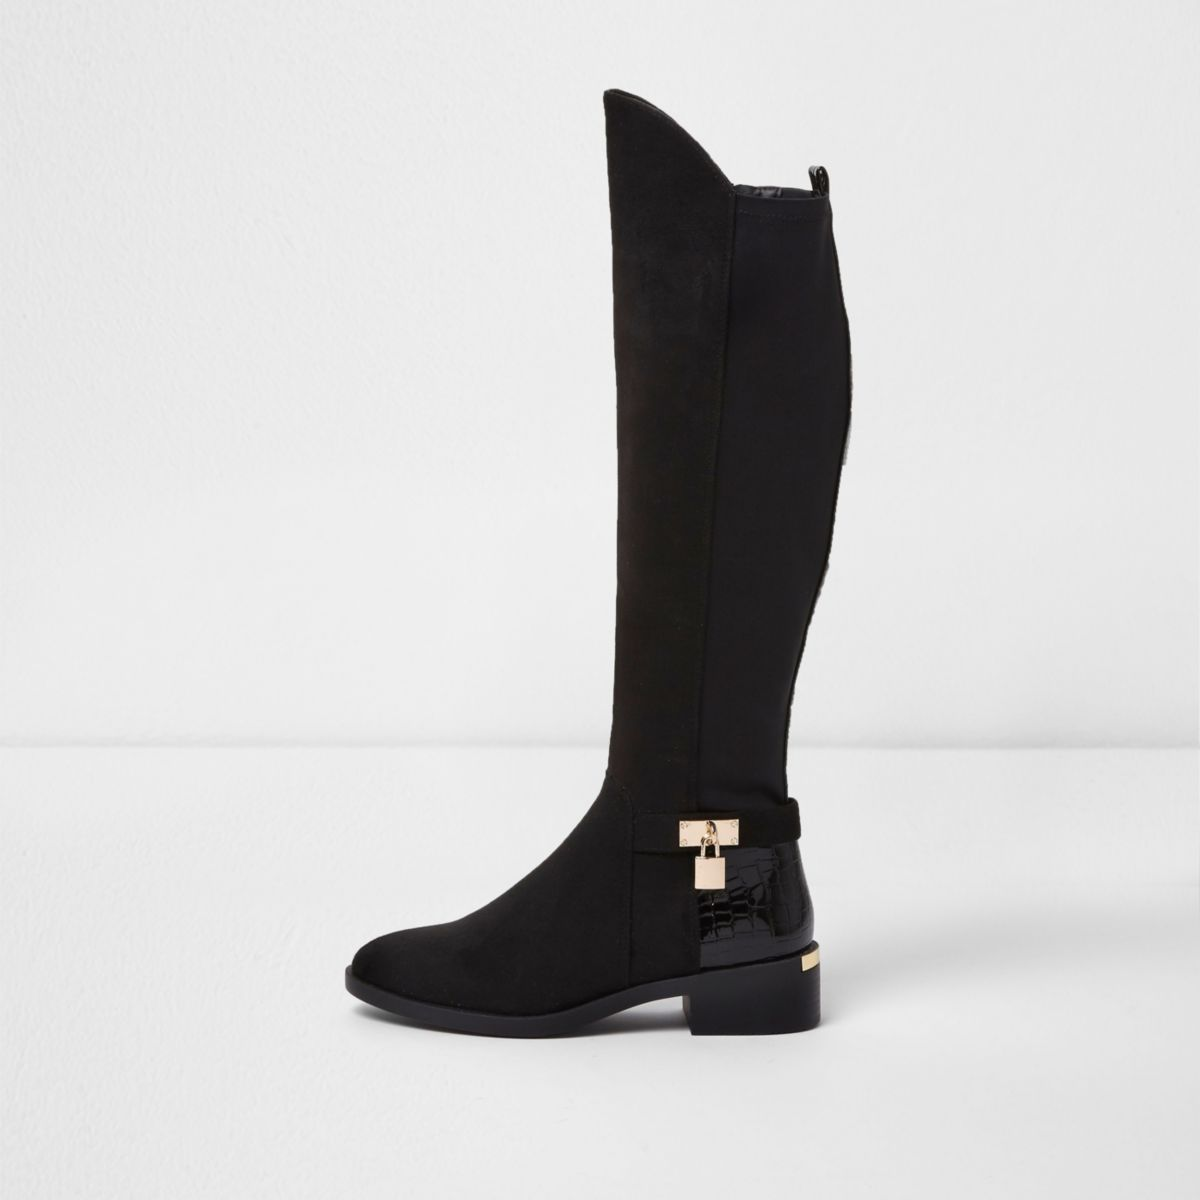 Black wide fit knee high riding boots